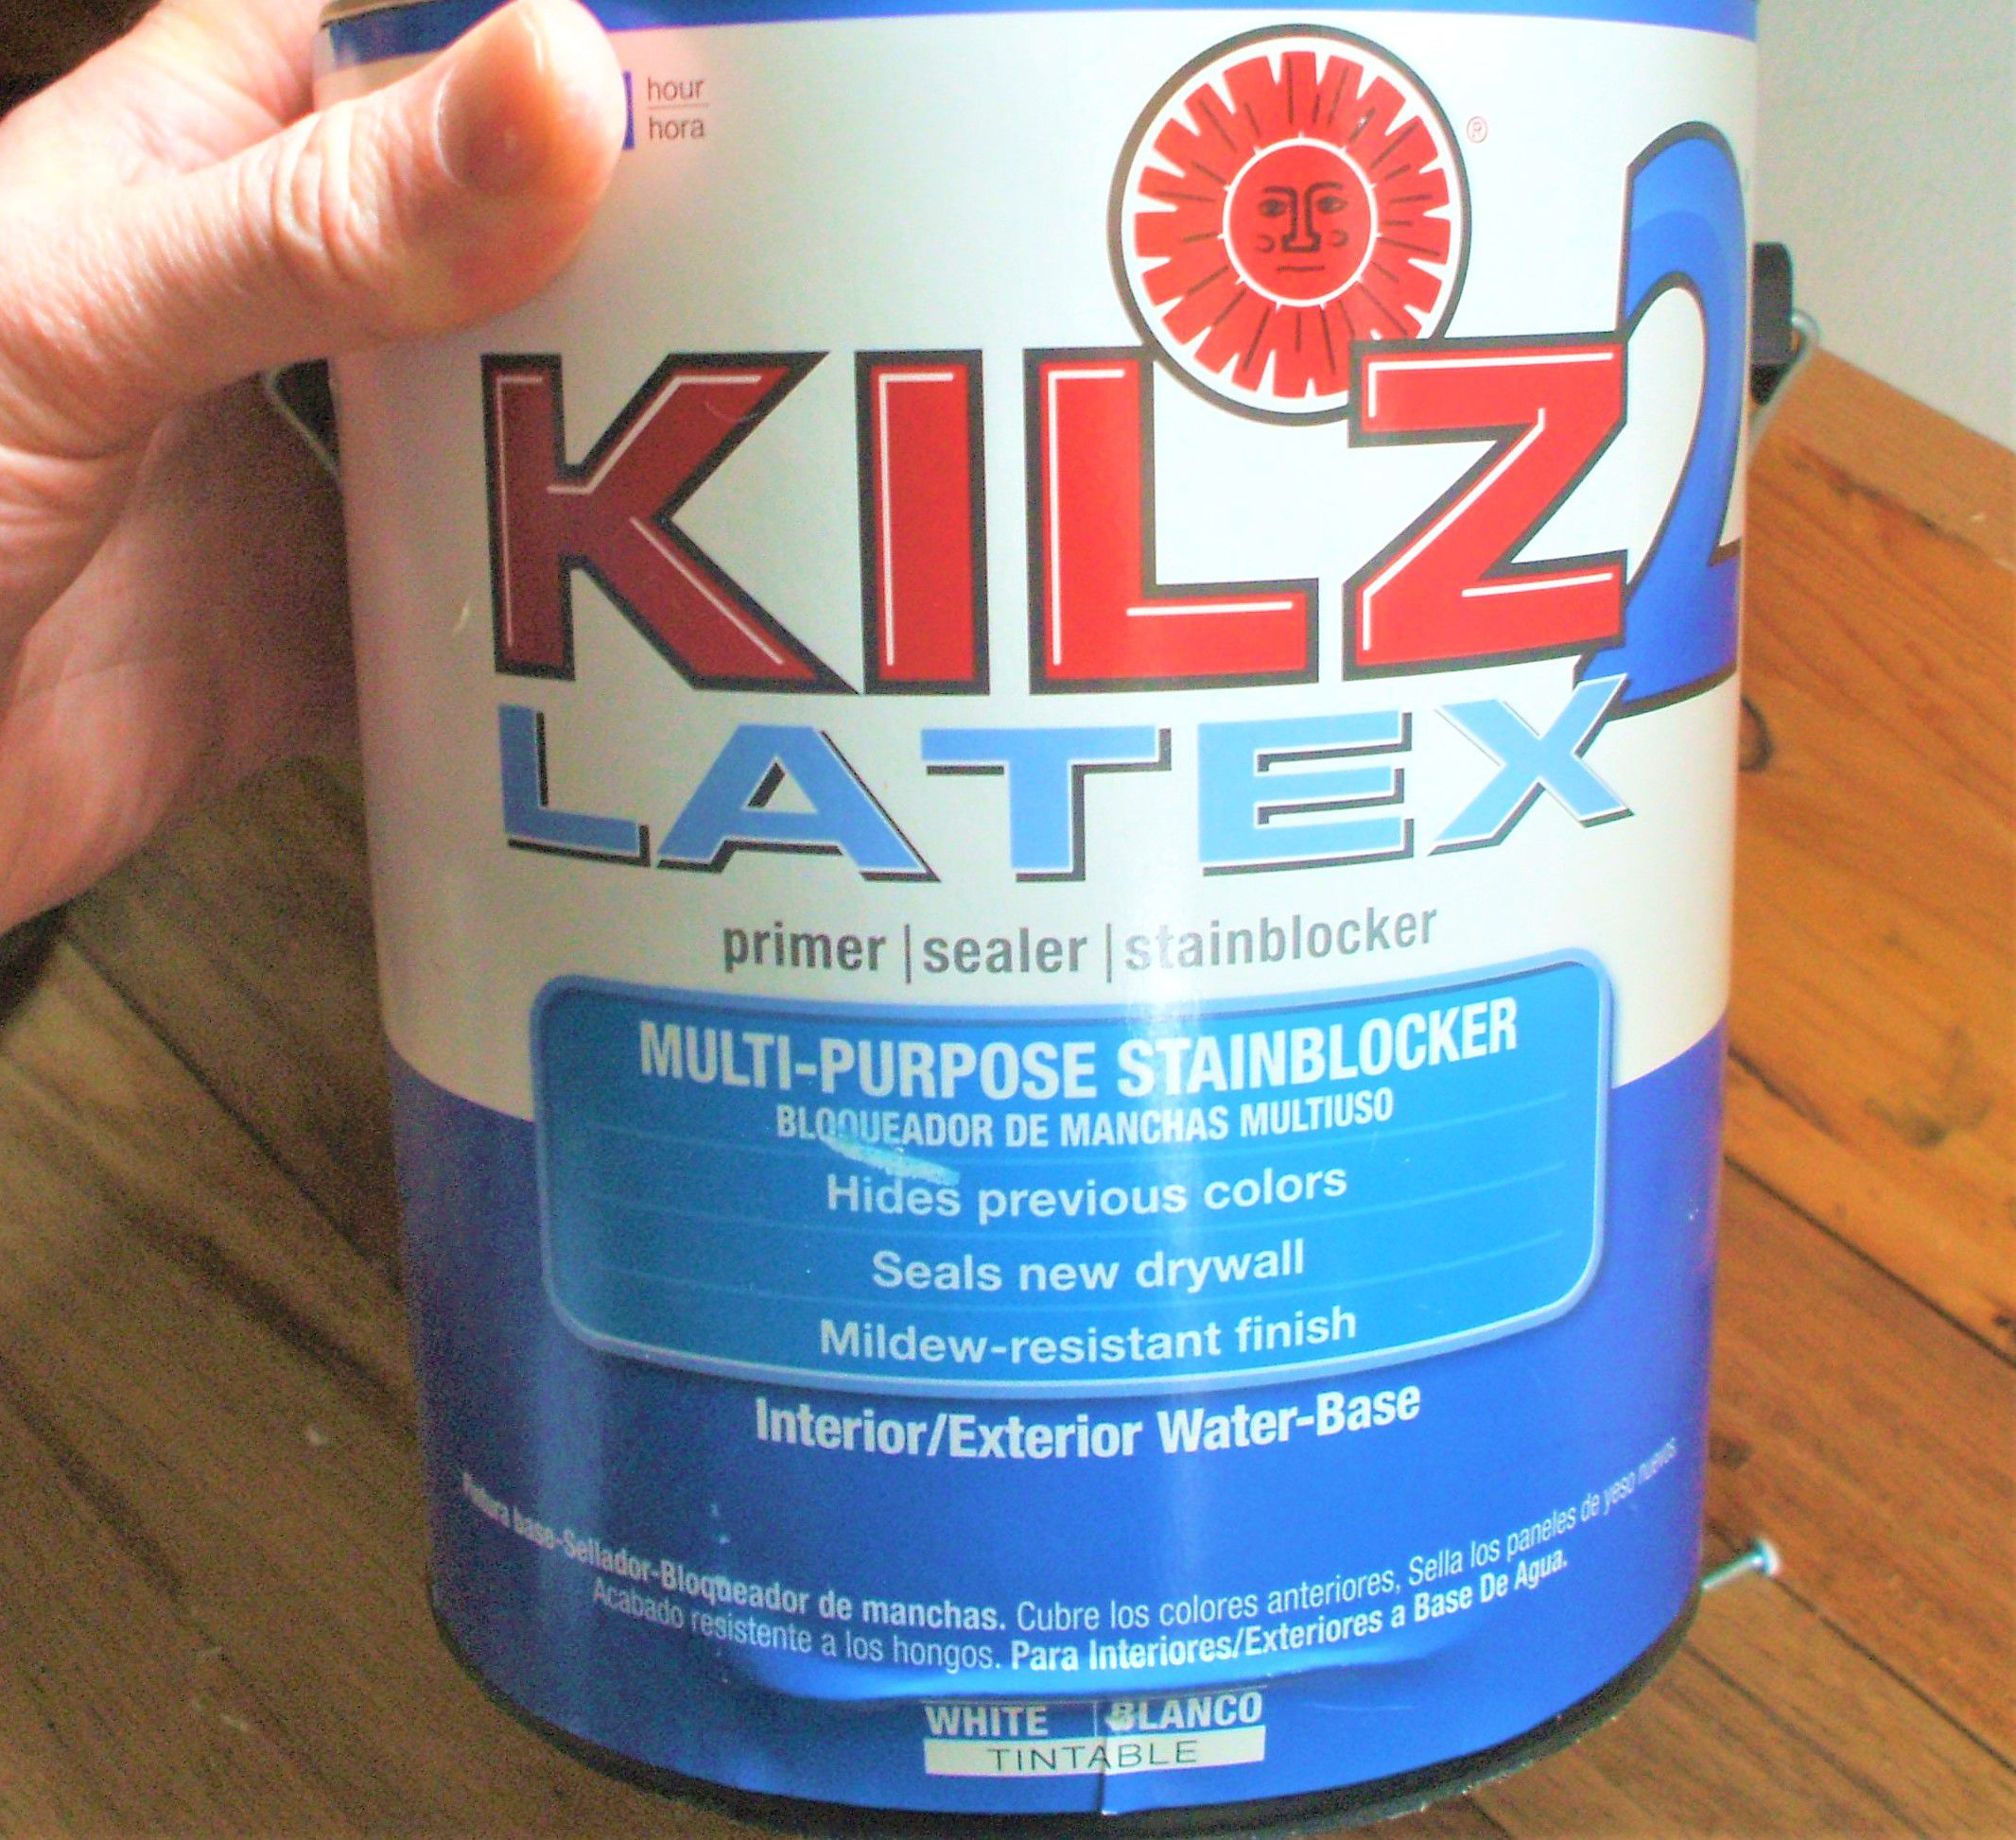 Feng Schui Kilz Paint Review: Stain-blocking Water-based Primer